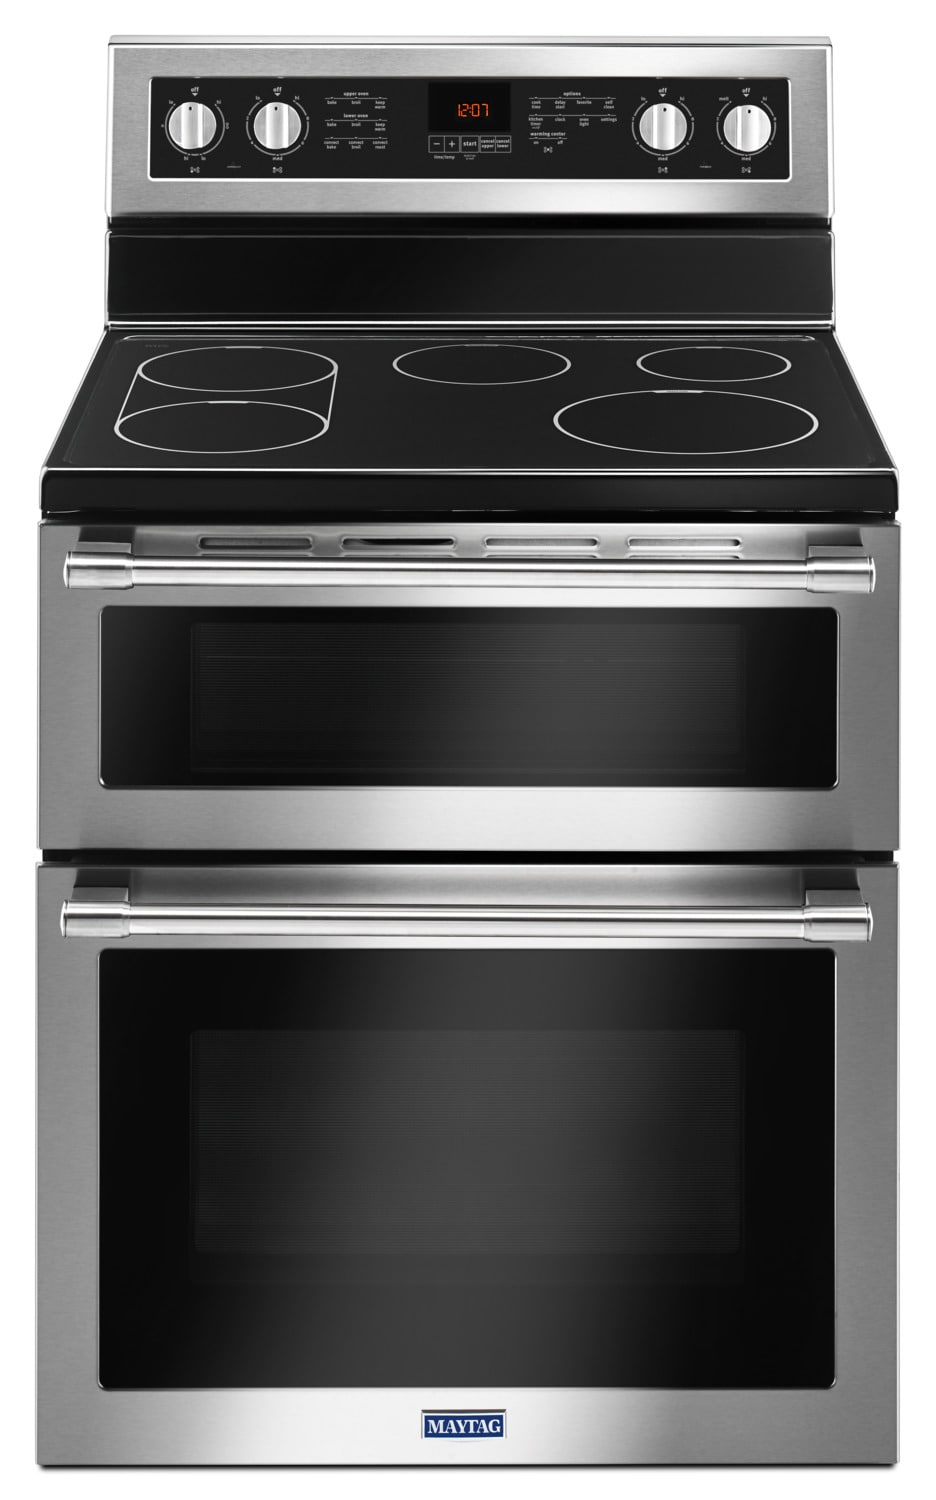 Maytag Stainless Steel Freestanding Electric Double Oven Range (6.0 Cu. Ft.) - YMET8800FZ